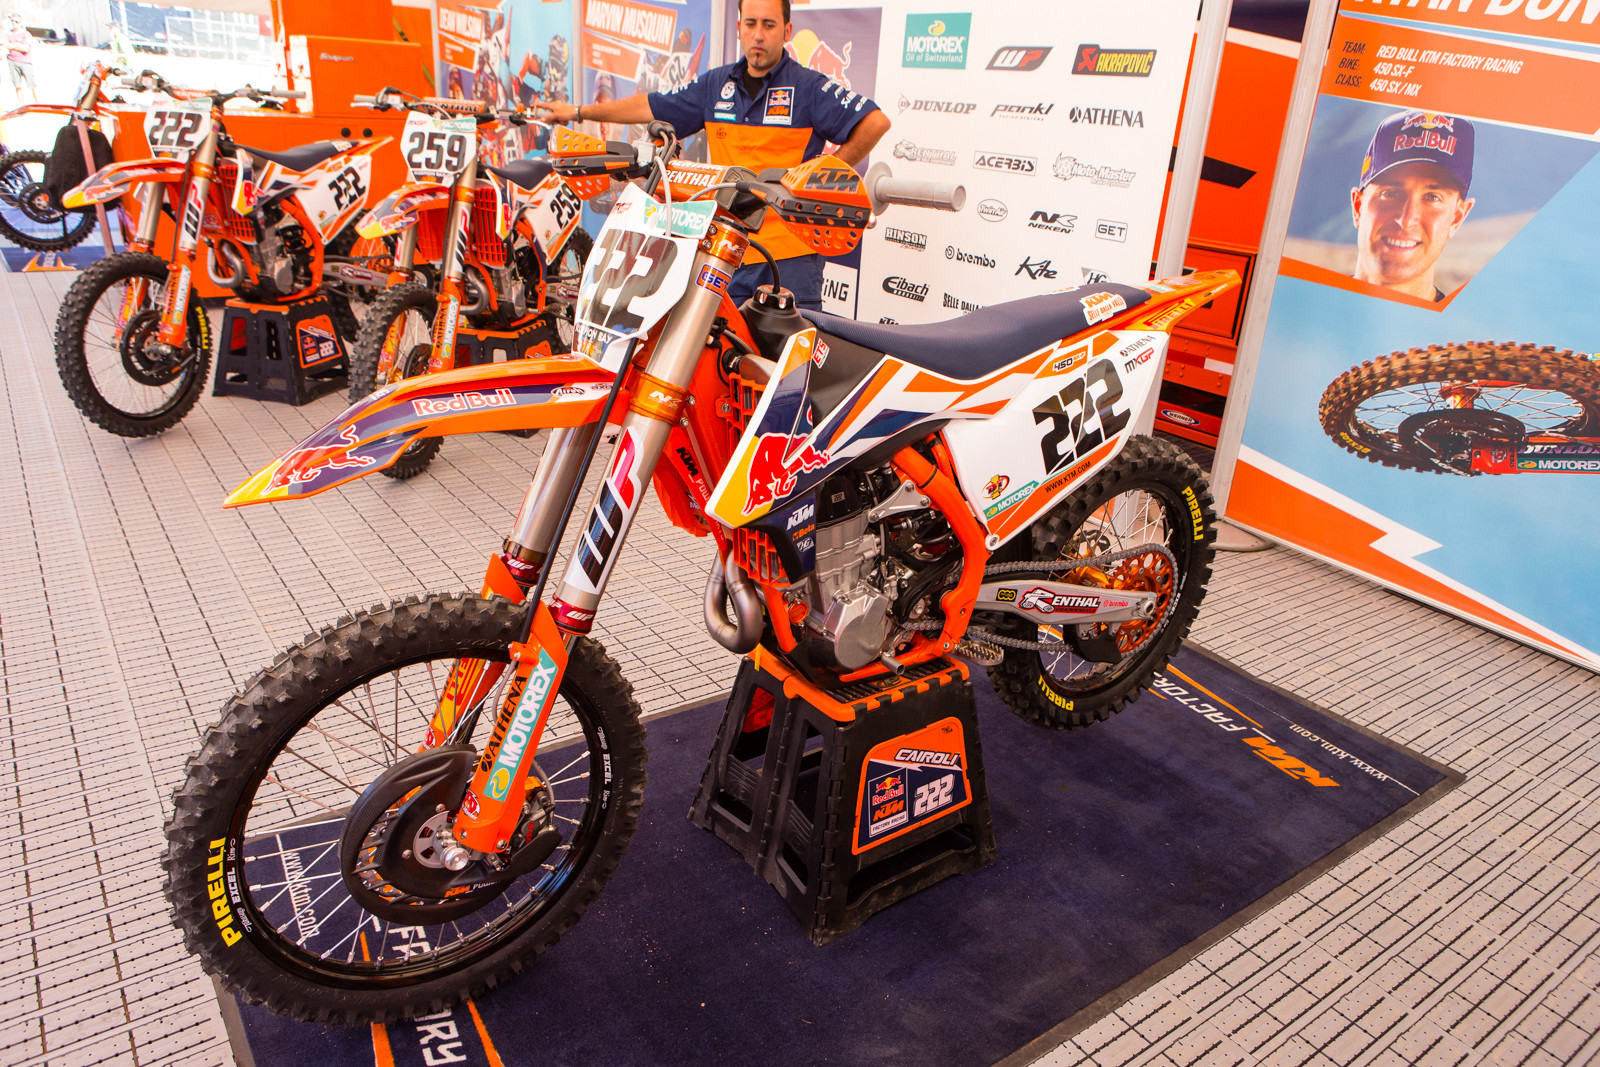 Tony Cairoli's Red Bull KTM 450 SX-F - Vital MX Pit Bits: 2016 MXGP of USA - Motocross Pictures - Vital MX